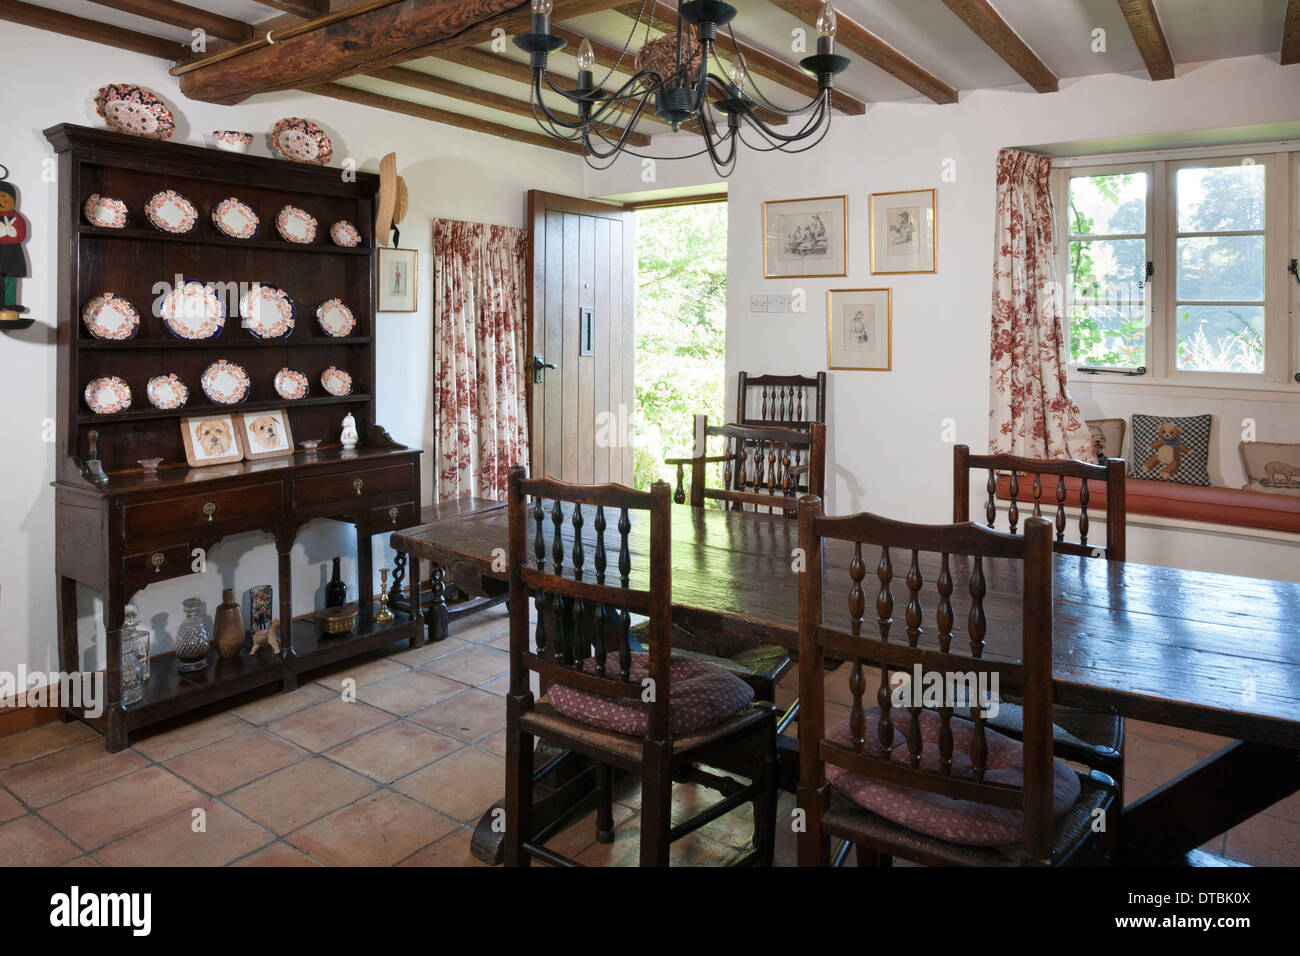 period small cottage dining room with tile floor, oak furniture